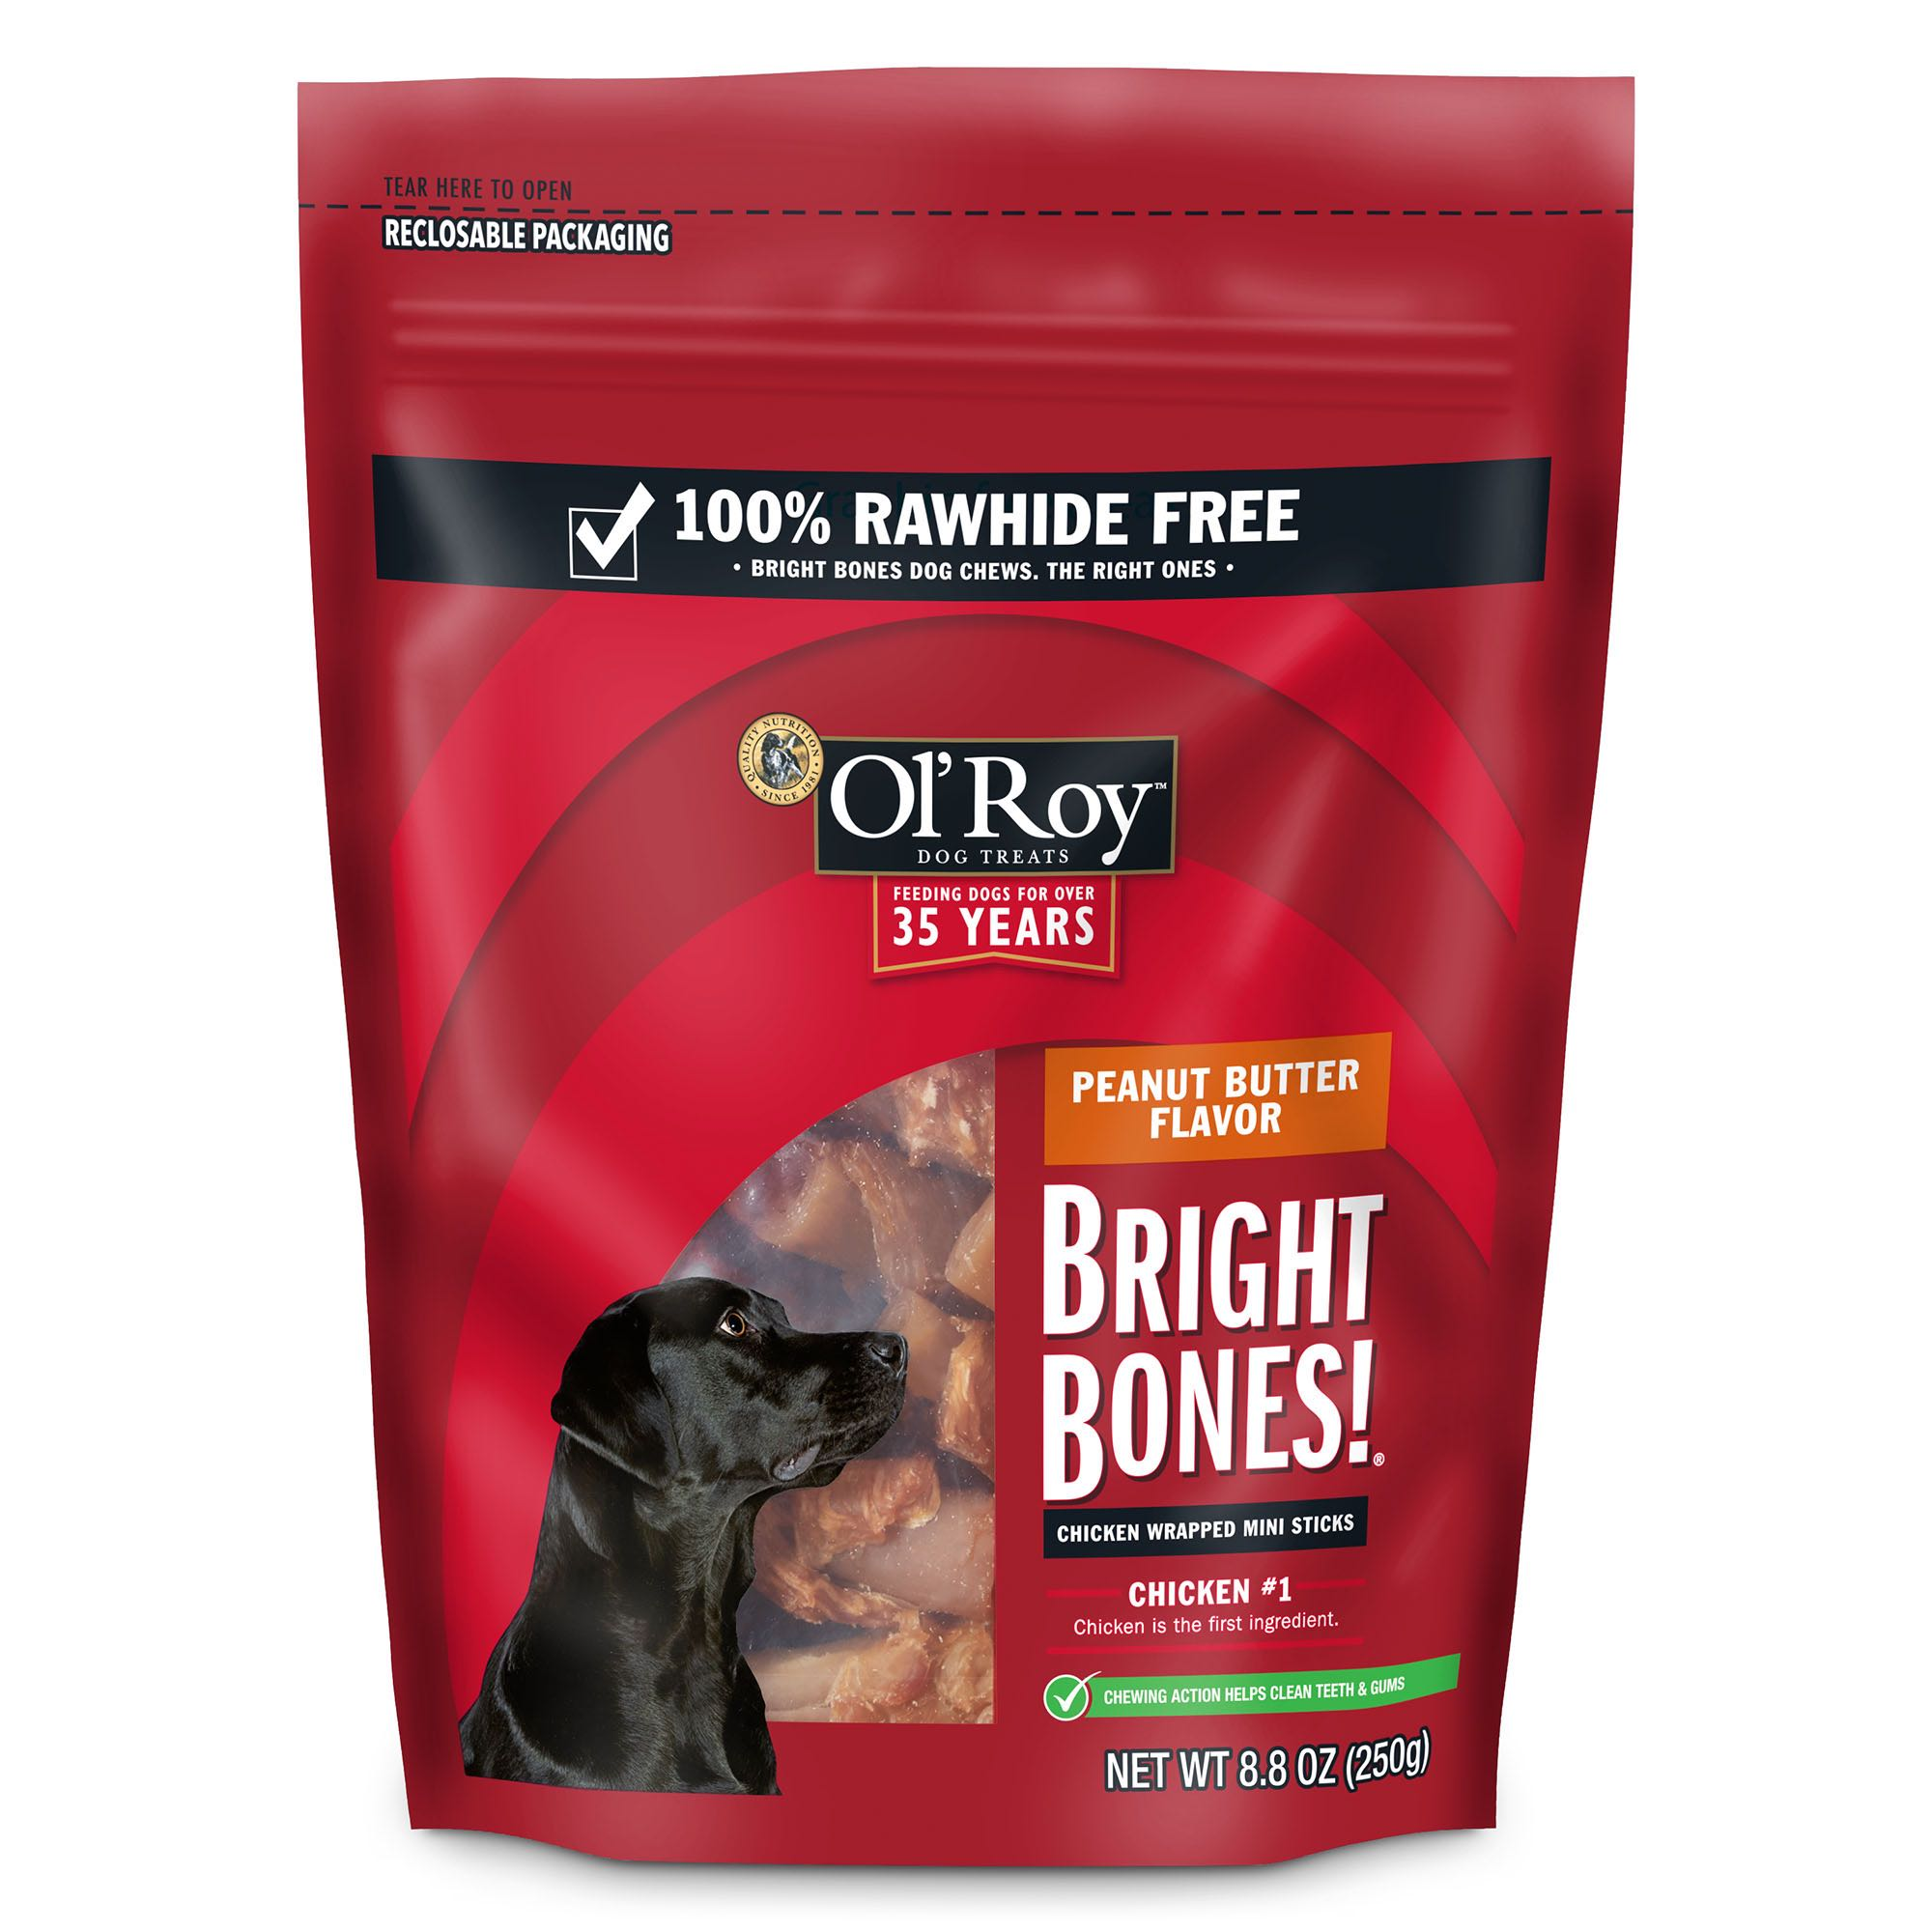 Ol' Roy Bright Bones Dog Treats